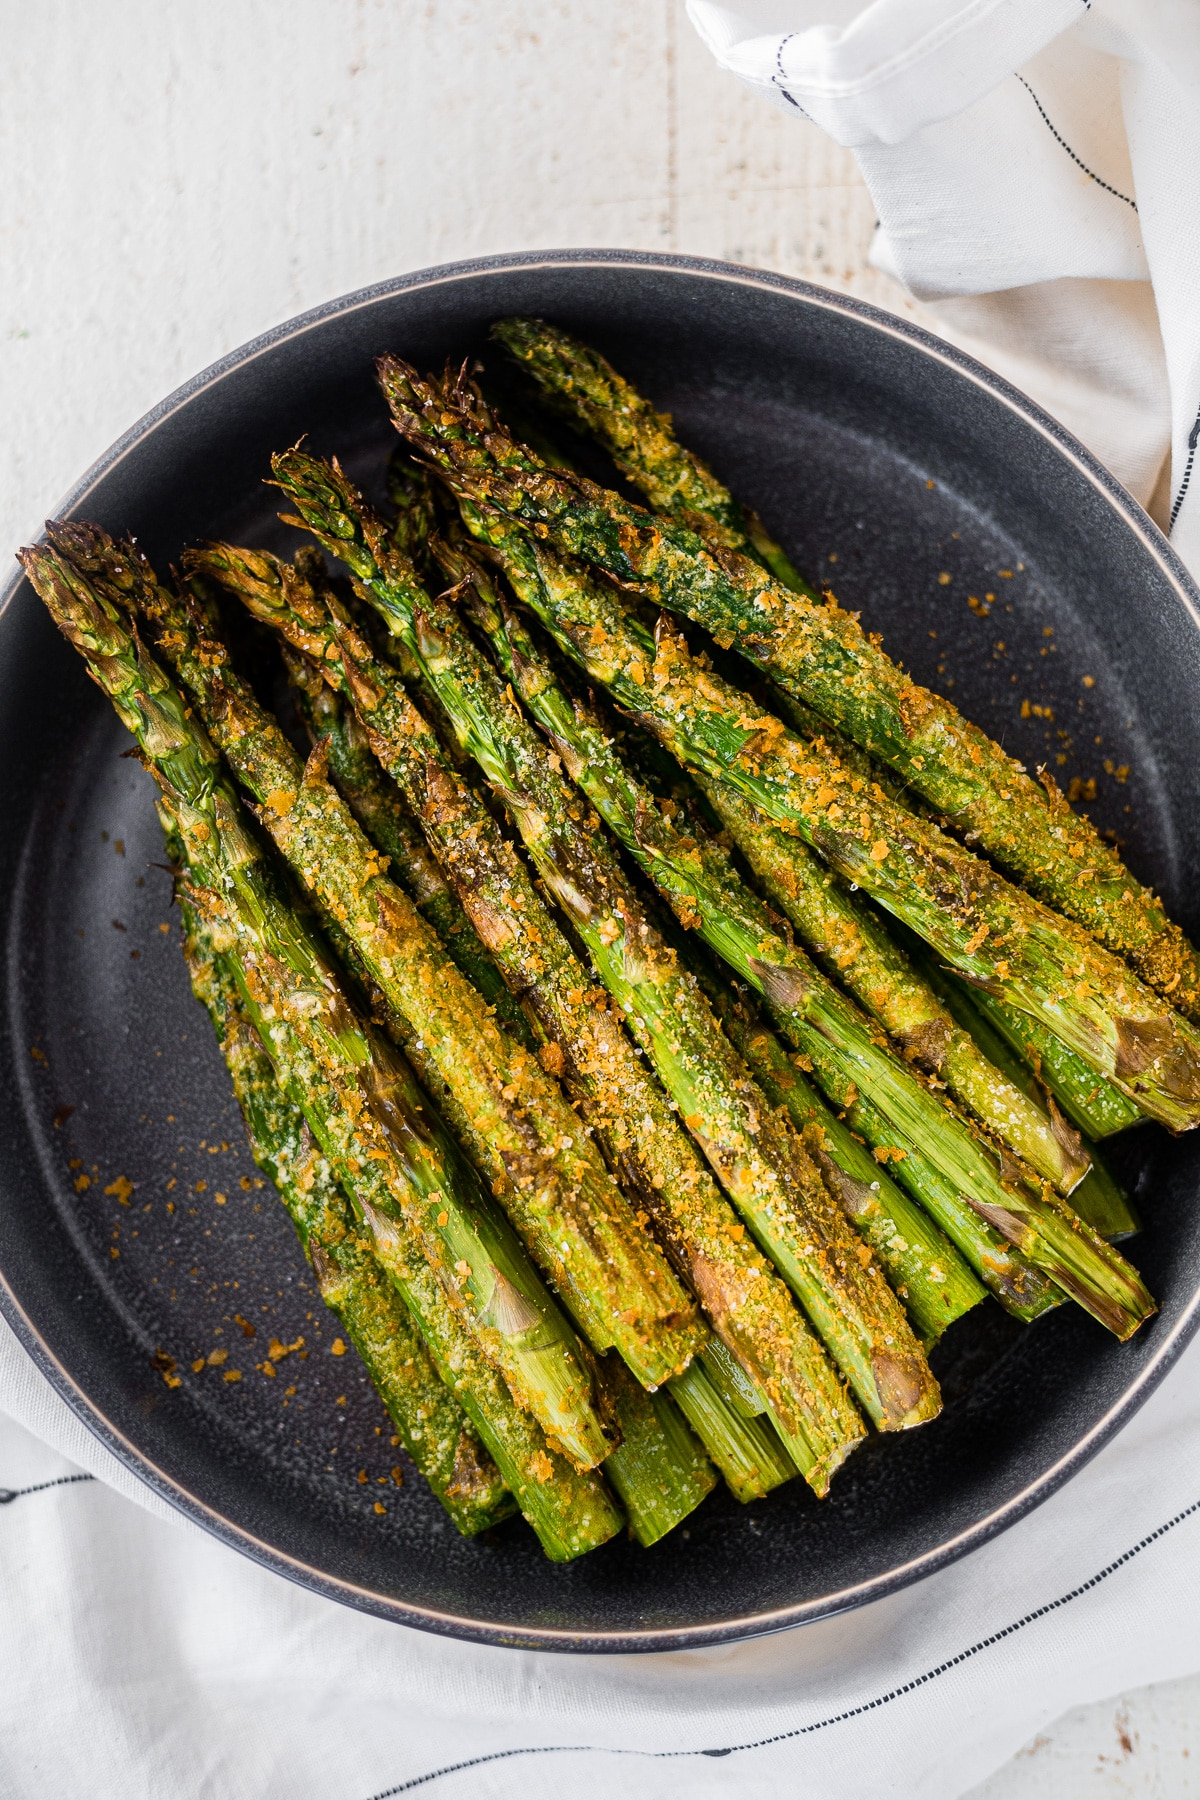 a pound of air fryer asparagus in a gray serving bowl